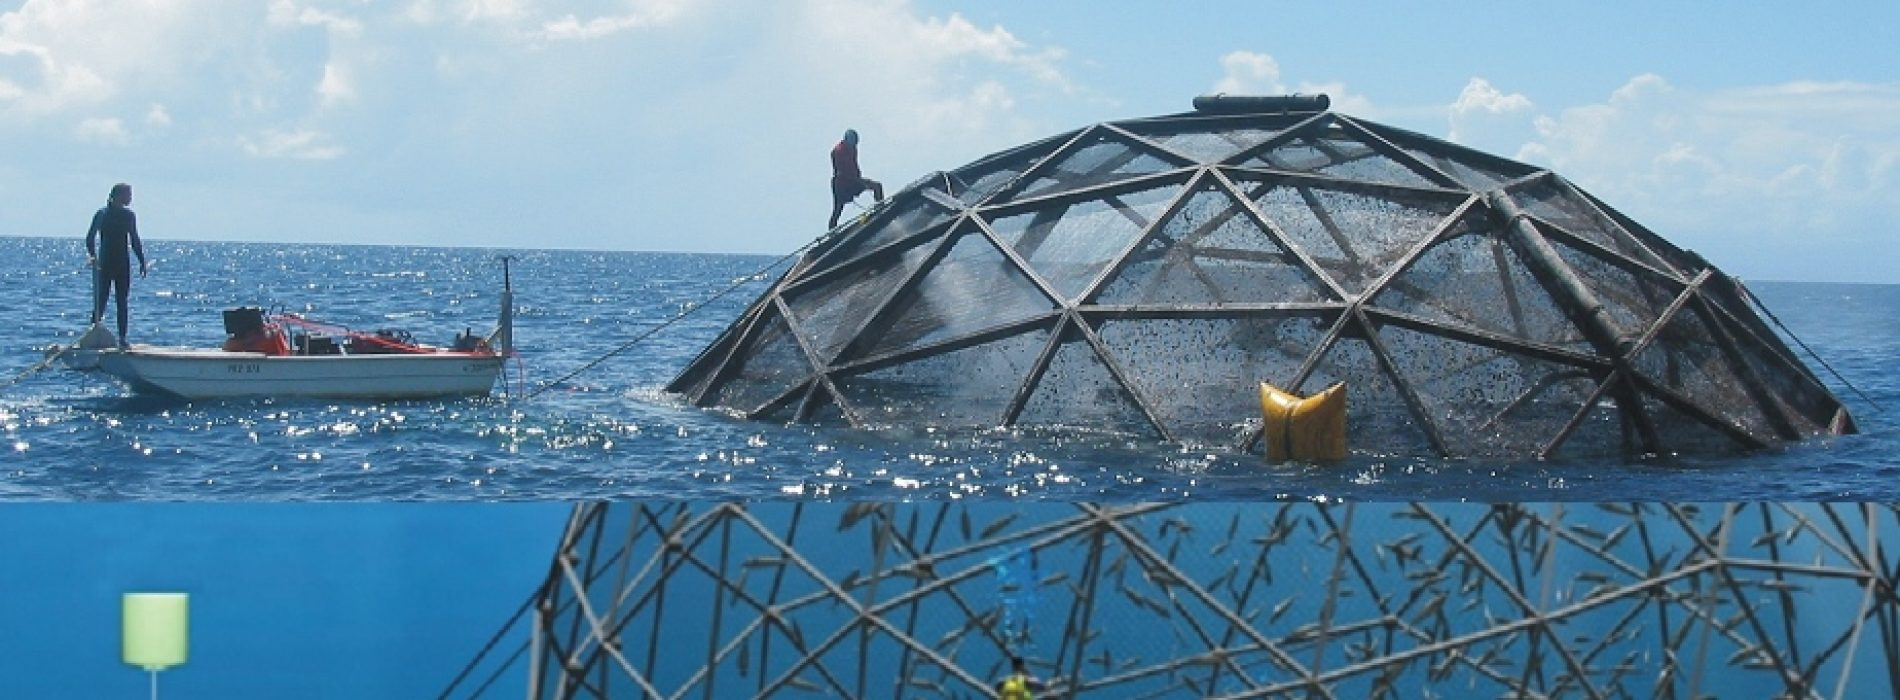 How to Farm Plentiful Fish While Taking Care of the Ocean